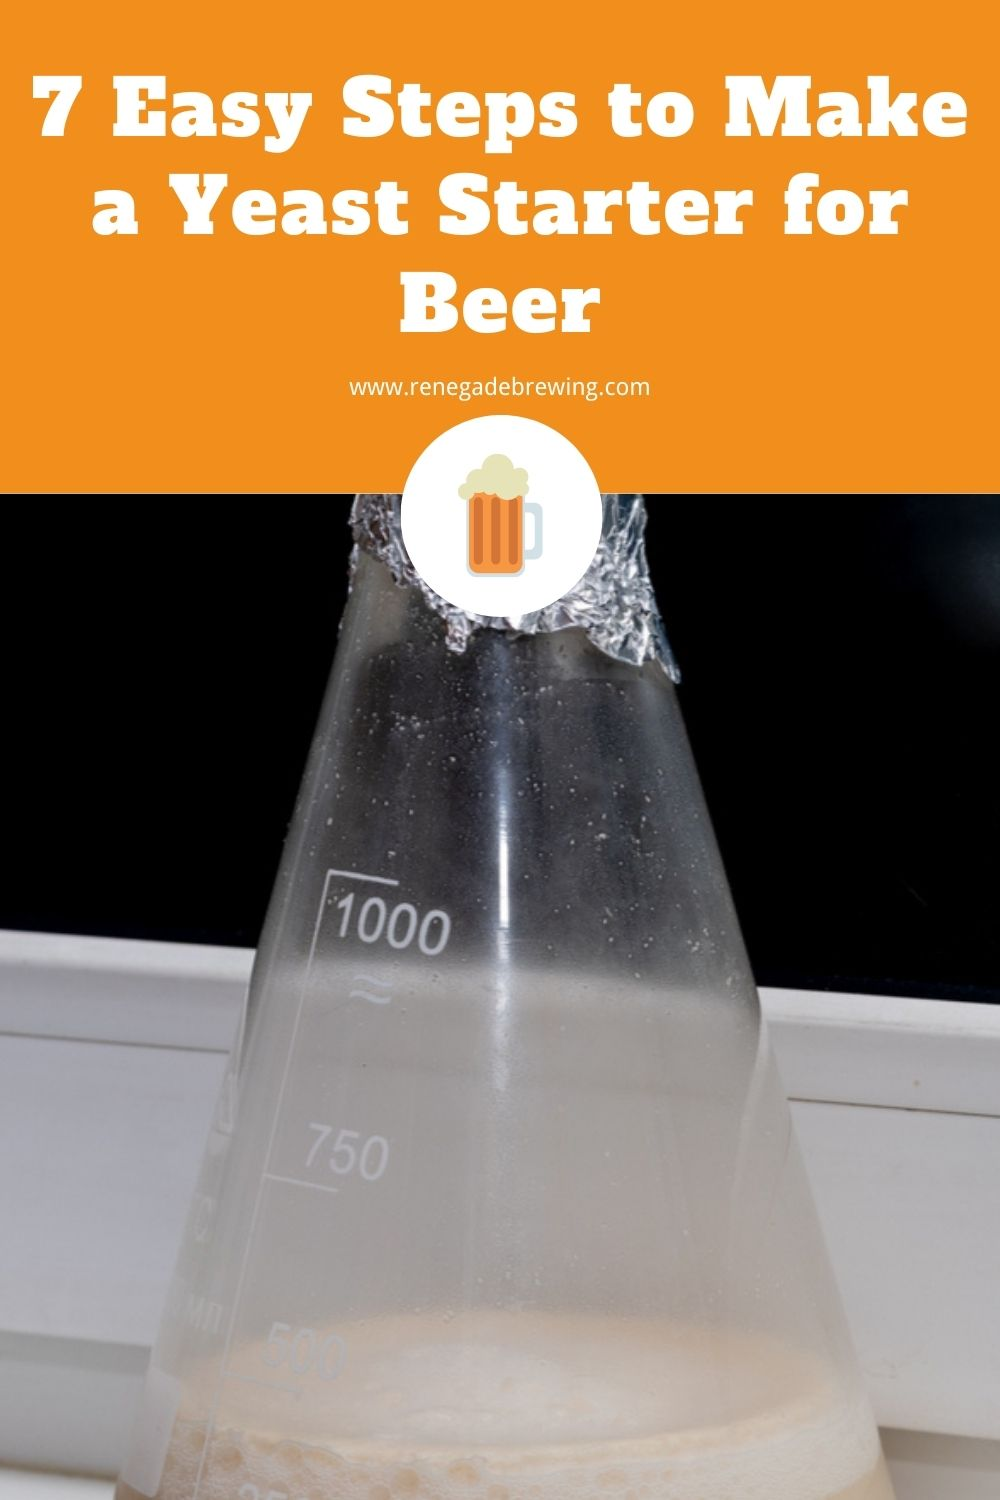 7 Easy Steps to Make a Yeast Starter for Beer 2